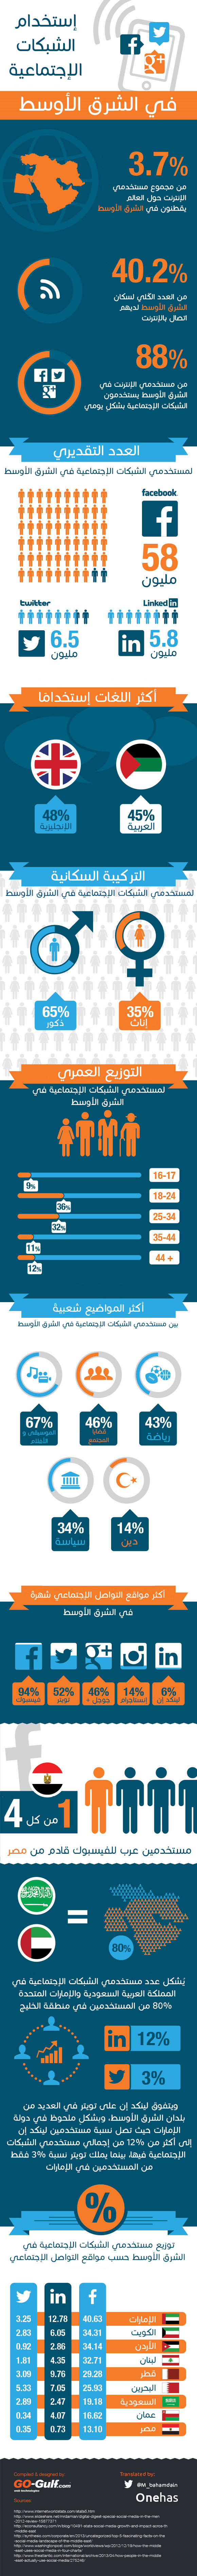 social-media-middle-east-arabic